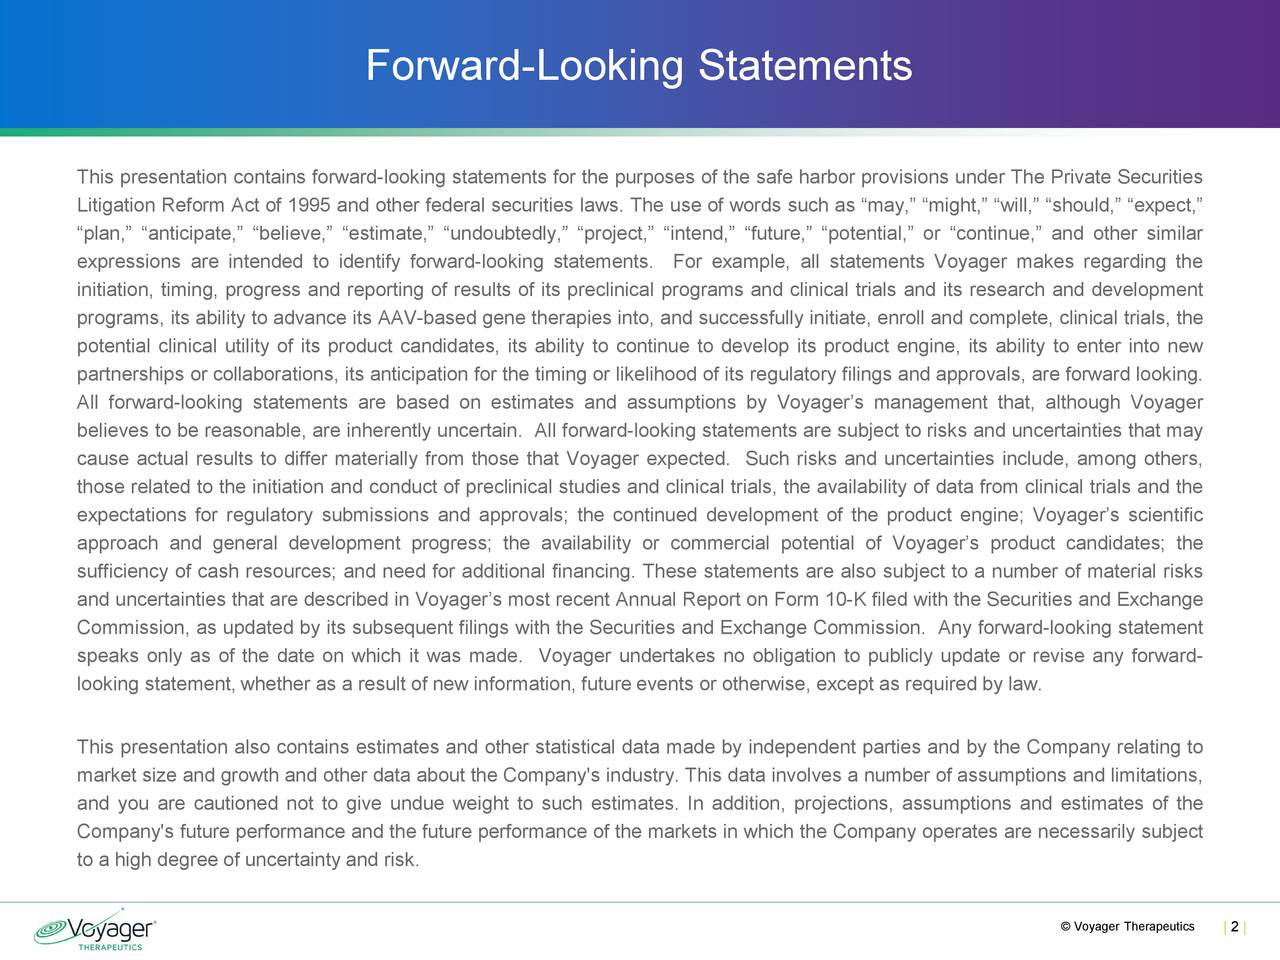 """This presentation contains forward-looking statementsfor the purposes of the safe harbor provisions under The Private Securities Litigation Reform Act of 1995 and other federal securities laws. The use of words such as """"may,"""" """"might,"""" """"will,"""" """"should,"""" """"expect,"""" """"plan,"""" """"anticipate,"""" """"believe,"""" """"estimate,"""" """"undoubtedly,"""" """"project,"""" """"intend,"""" """"future,"""" """"potential,"""" or """"continue,"""" and other similar expressions are intended to identify forward-looking statements. For example, all statements Voyager makes regarding the initiation, timing, progress and reporting of results of its preclinical programs and clinical trials and its research and development programs, its ability to advance its AAV-based gene therapies into, and successfully initiate, enroll and complete, clinical trials, the potential clinical utility of its product candidates, its ability to continue to develop its product engine, its ability to enter into new partnerships or collaborations, its anticipation for the timing or likelihood of its regulatory filings and approvals, are forward looking. All forward-looking statements are based on estimates and assumptions by Voyager's management that, although Voyager believes to be reasonable, are inherently uncertain. All forward-looking statementsare subject to risks and uncertainties that may cause actual results to differ materially from those that Voyager expected. Such risks and uncertainties include, among others, those related to the initiation and conduct of preclinical studies and clinical trials, the availability of data from clinical trials and the expectations for regulatory submissions and approvals; the continued development of the product engine; Voyager's scientific approach and general development progress; the availability or commercial potential of Voyager's product candidates; the sufficiency of cash resources; and need for additional financing. These statements are also subject to a number of material risks and uncertainties that are describ"""